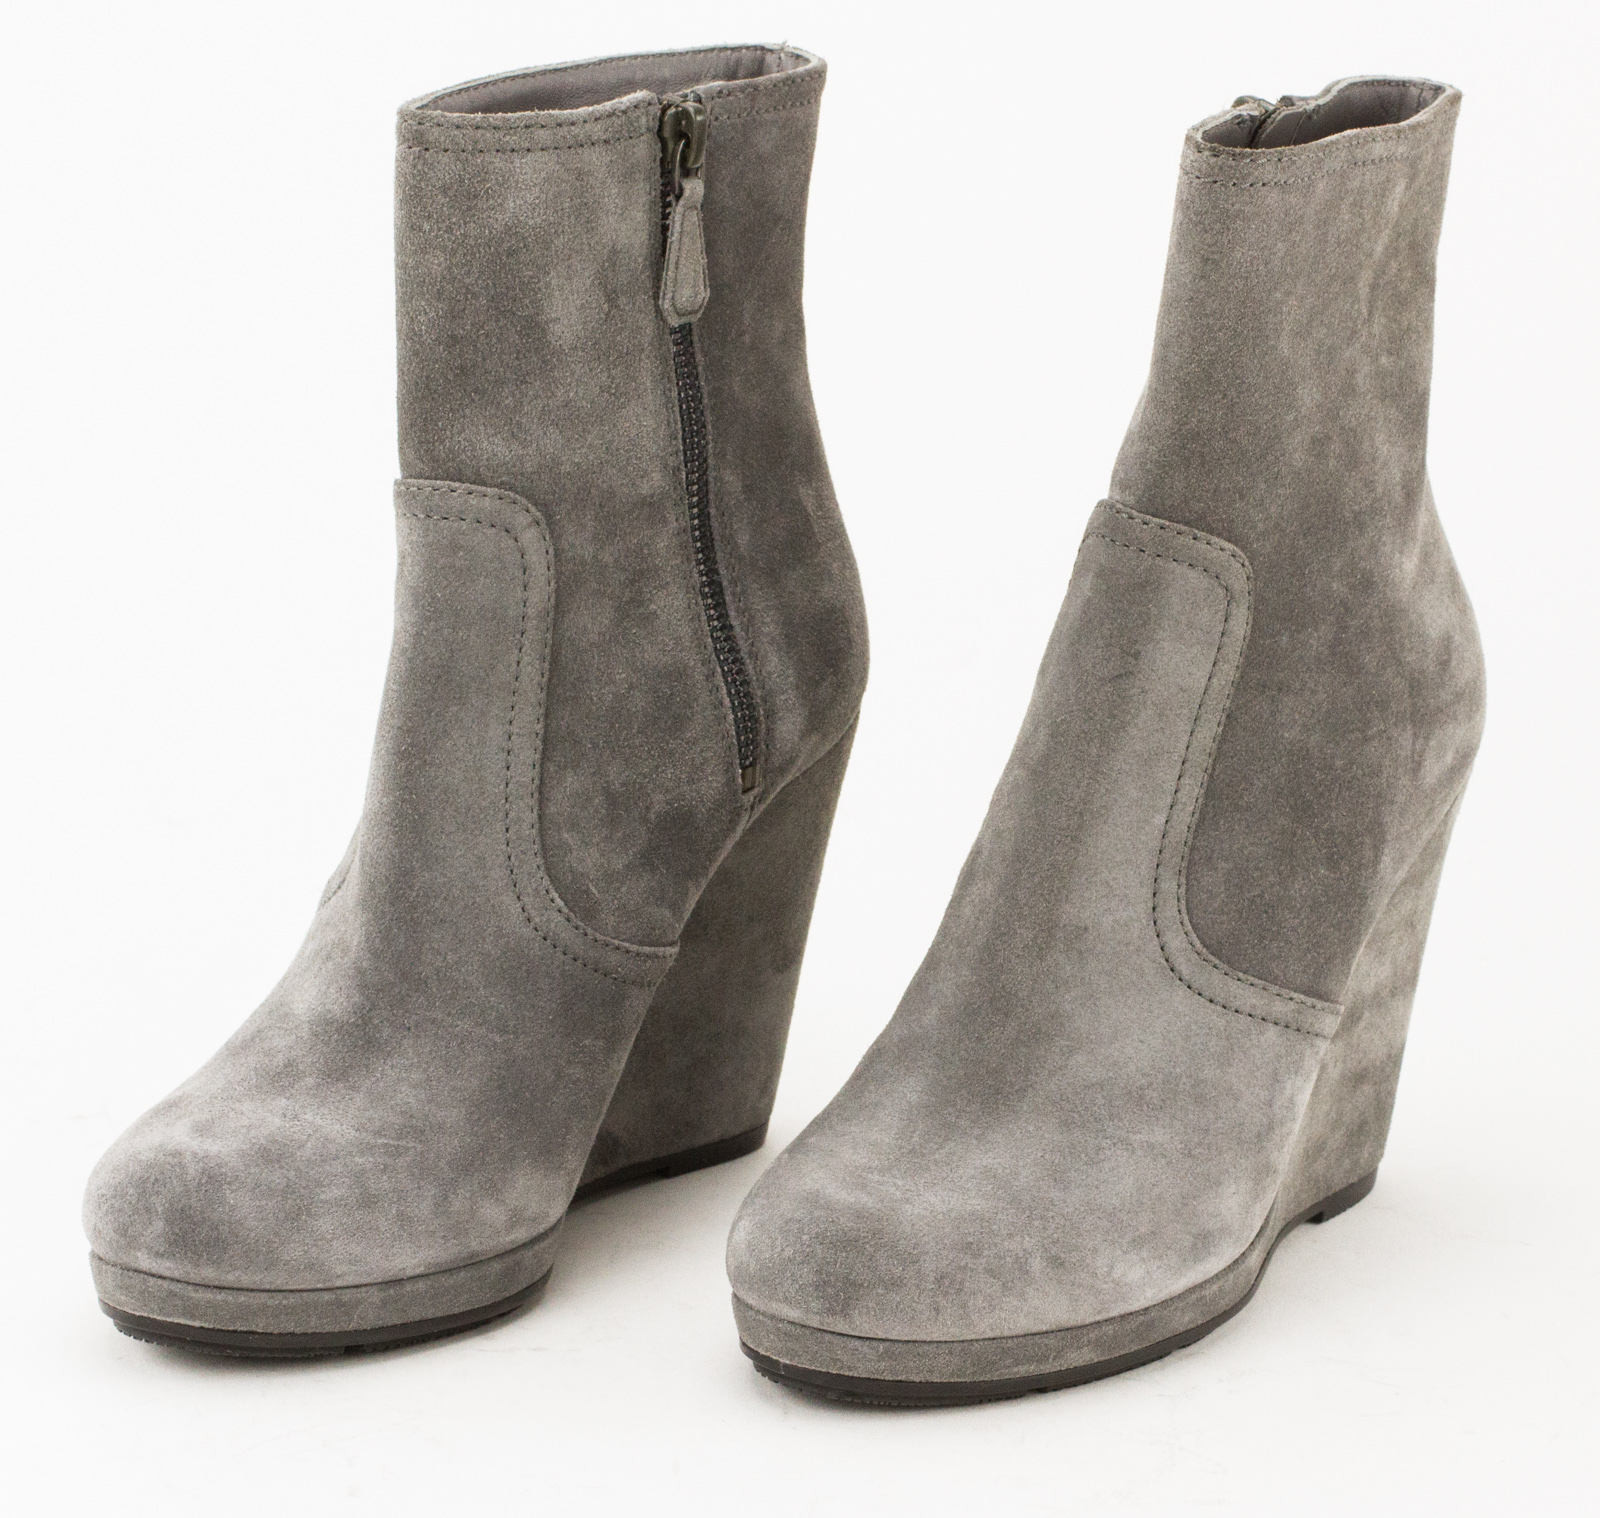 PRADA Gray Suede Wedge Ankle Booties   Penny Pincher Boutique 9b81e4d7ed1